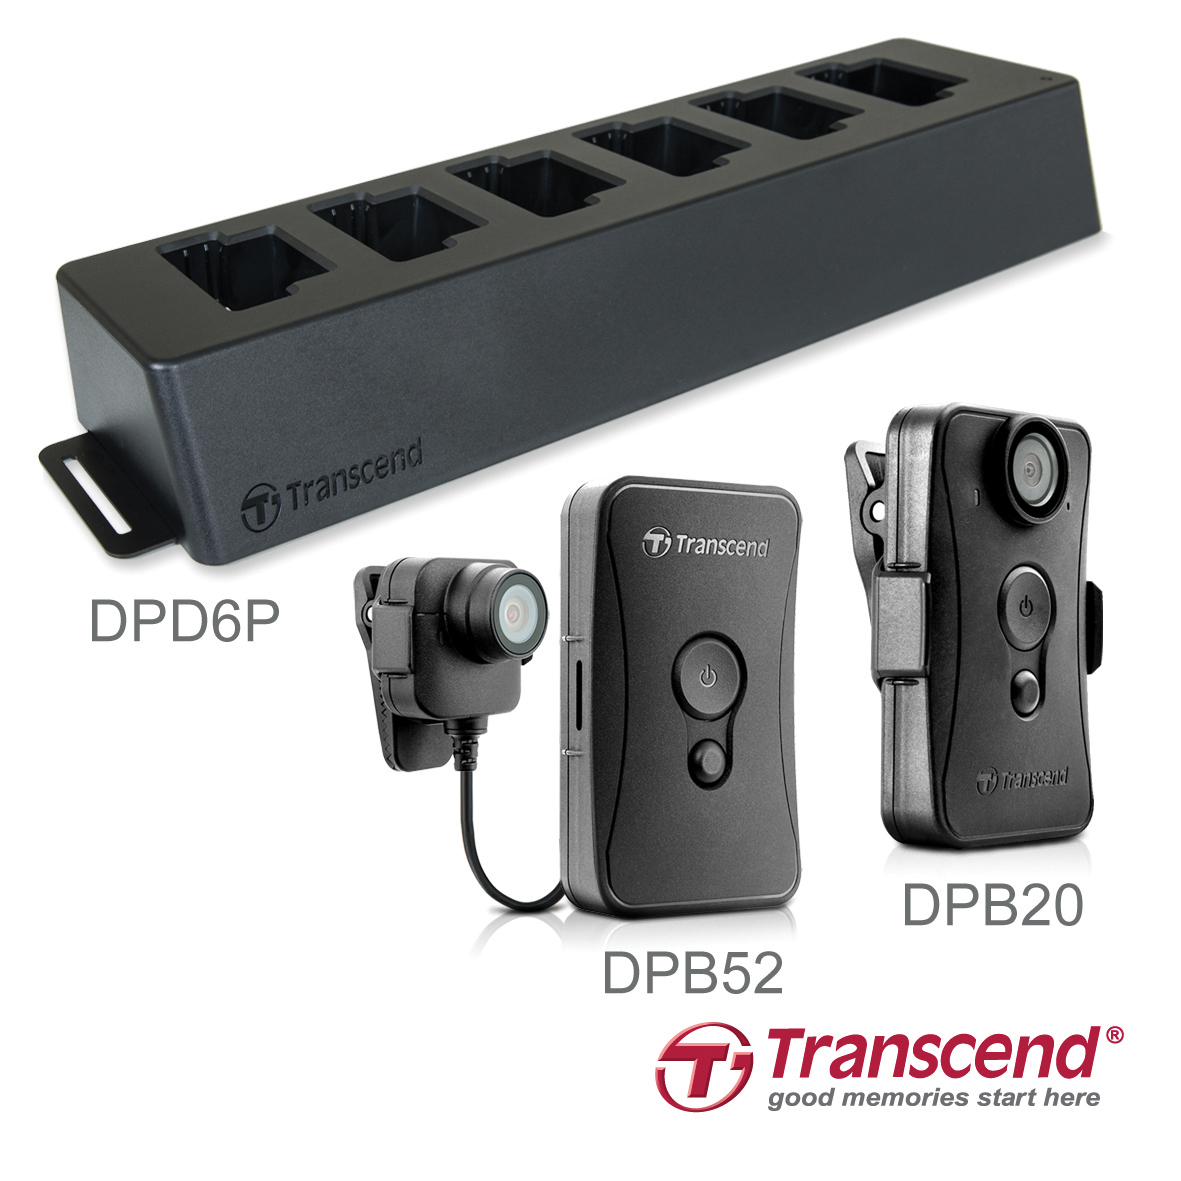 Transcend DrivePro Body 20 and DrivePro Body 52 Body Cameras